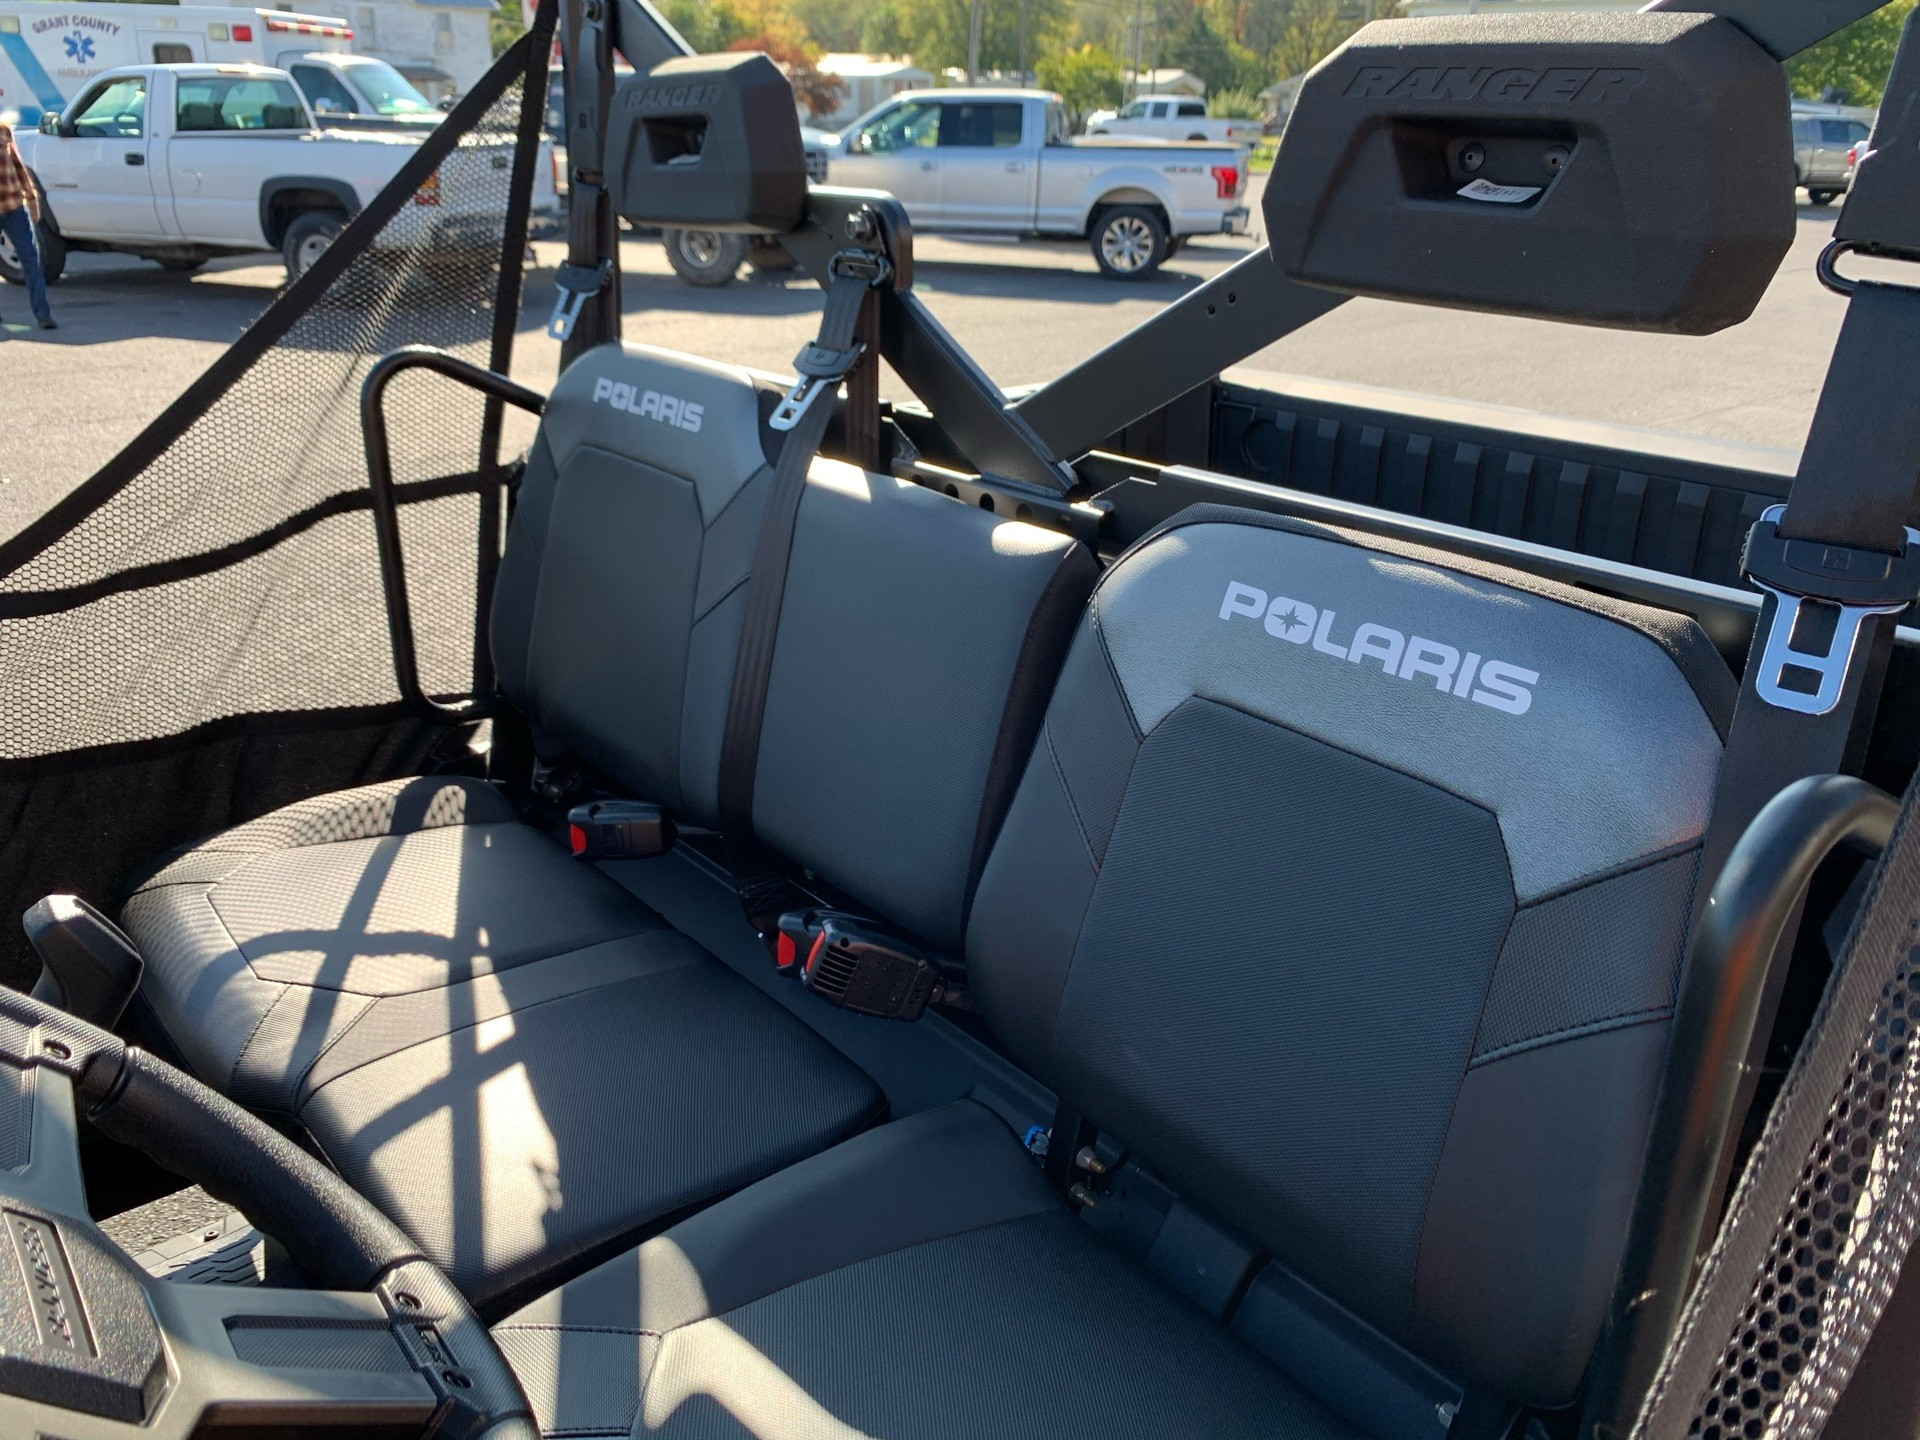 2021 Polaris Ranger XP 1000 Premium in Petersburg, West Virginia - Photo 7